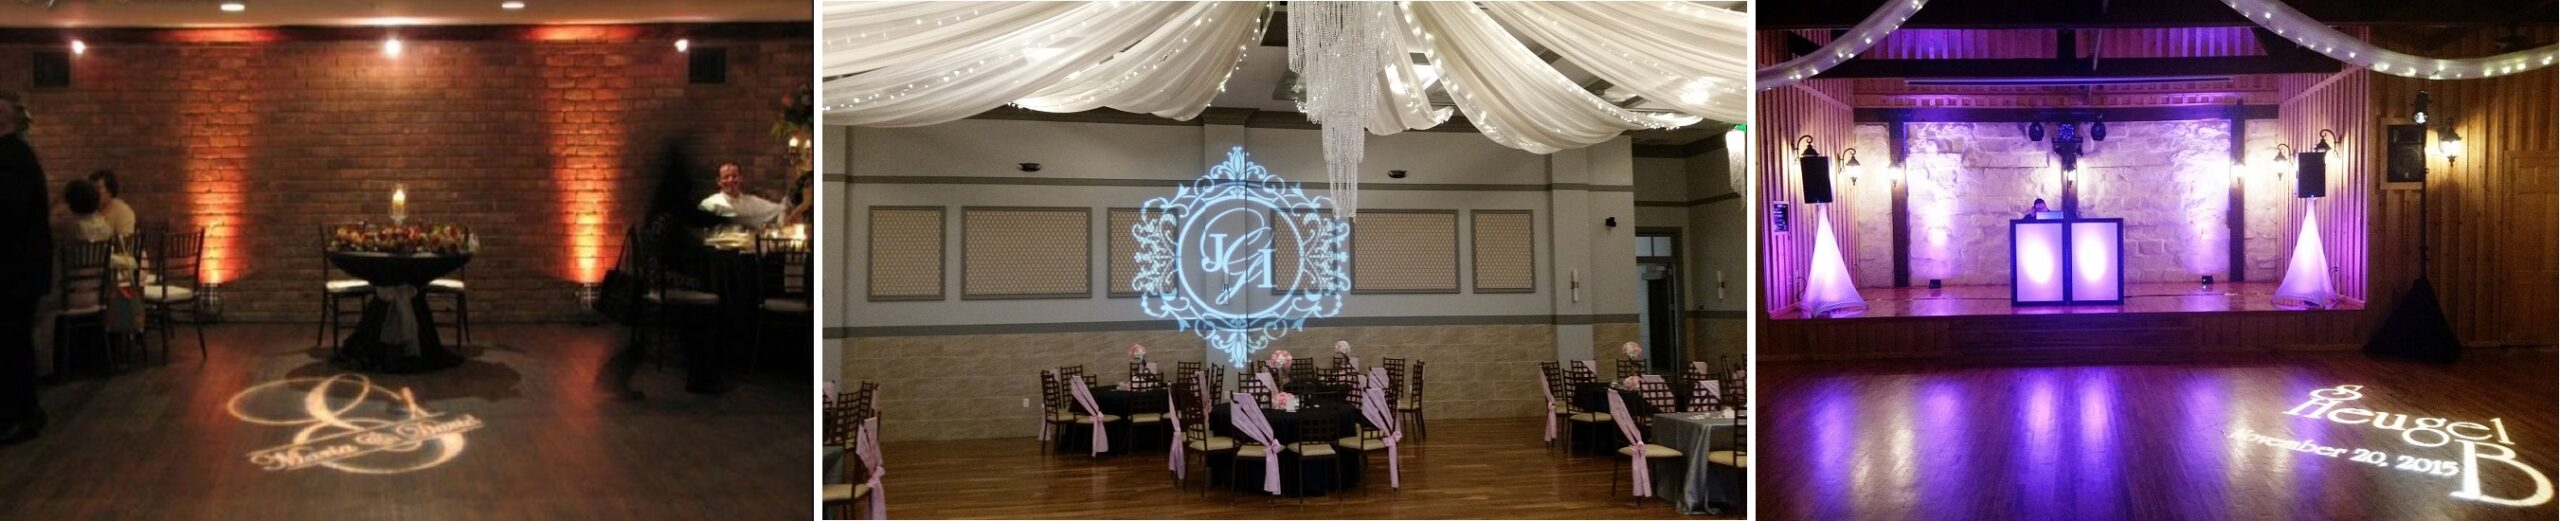 Houston Wedding DJ, DJs in Houston, Houston DJ, Custom Gobo Monogram, Houston Up-Lighting, Texture Lighting, Event Lighting, Pin Lighting, Club Lighting, Stage Lighting, Awesome Music Entertainment, Awesome Event Pros, Awesome Lighting Decor, AME DJs, Sonido DJ Sammy De Houston